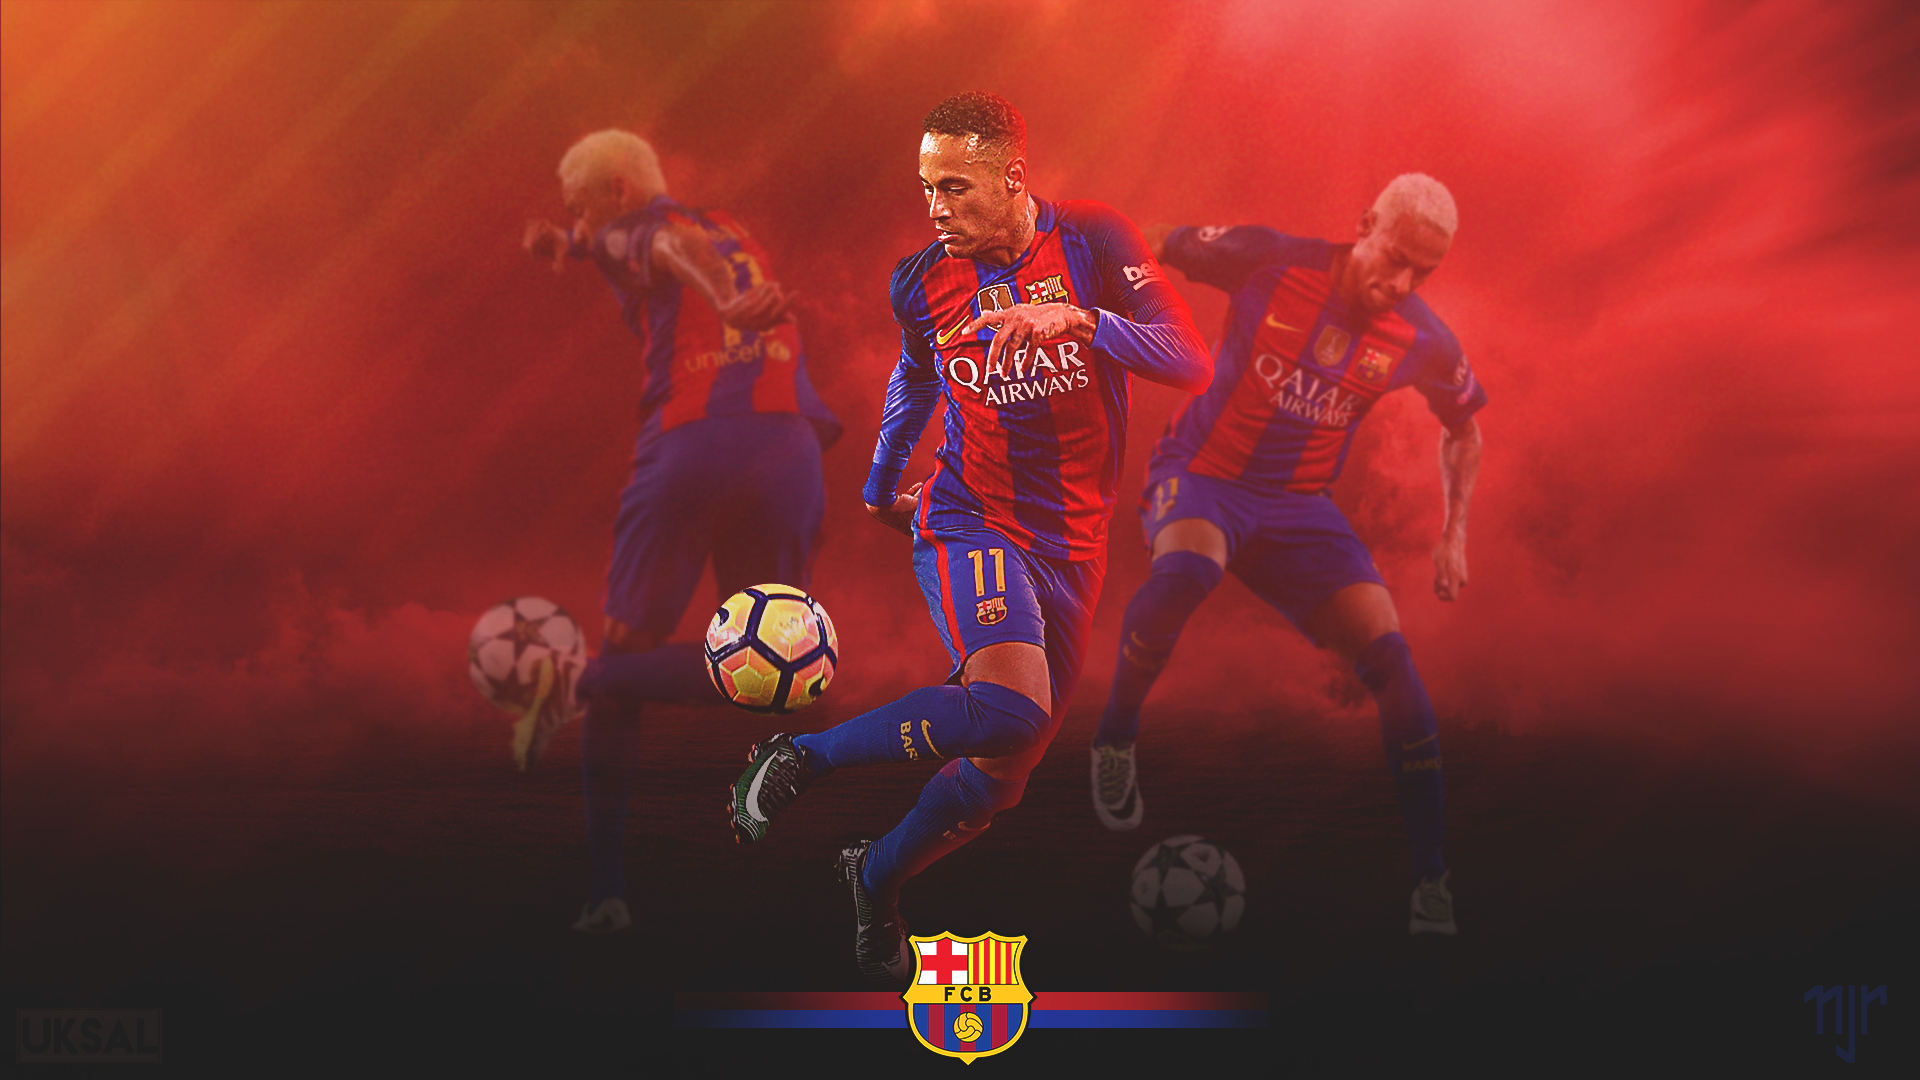 Hd wallpaper neymar - Neymar Jr Hd Images 2 Whb Neymarjrhdimages Neymarjr Neymar Football Soccer